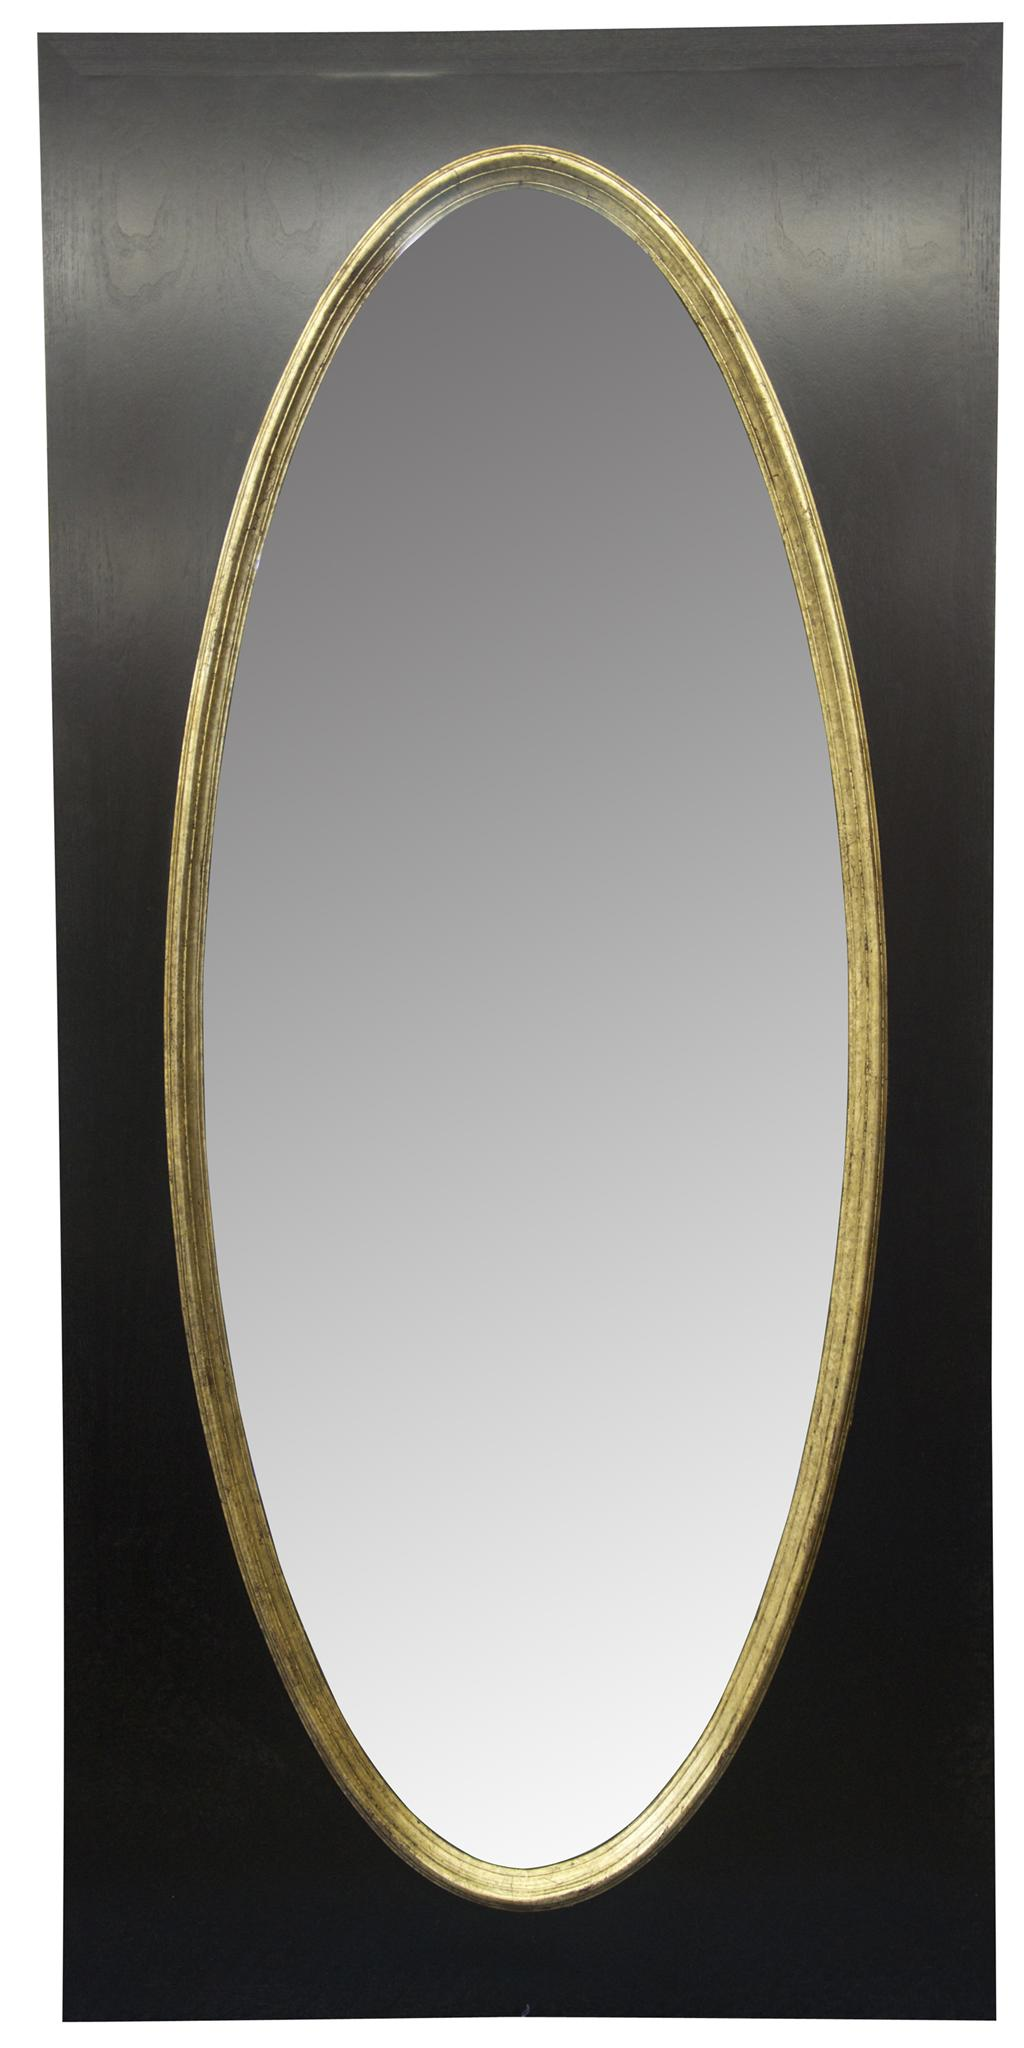 Golden Egg Floor Mirror